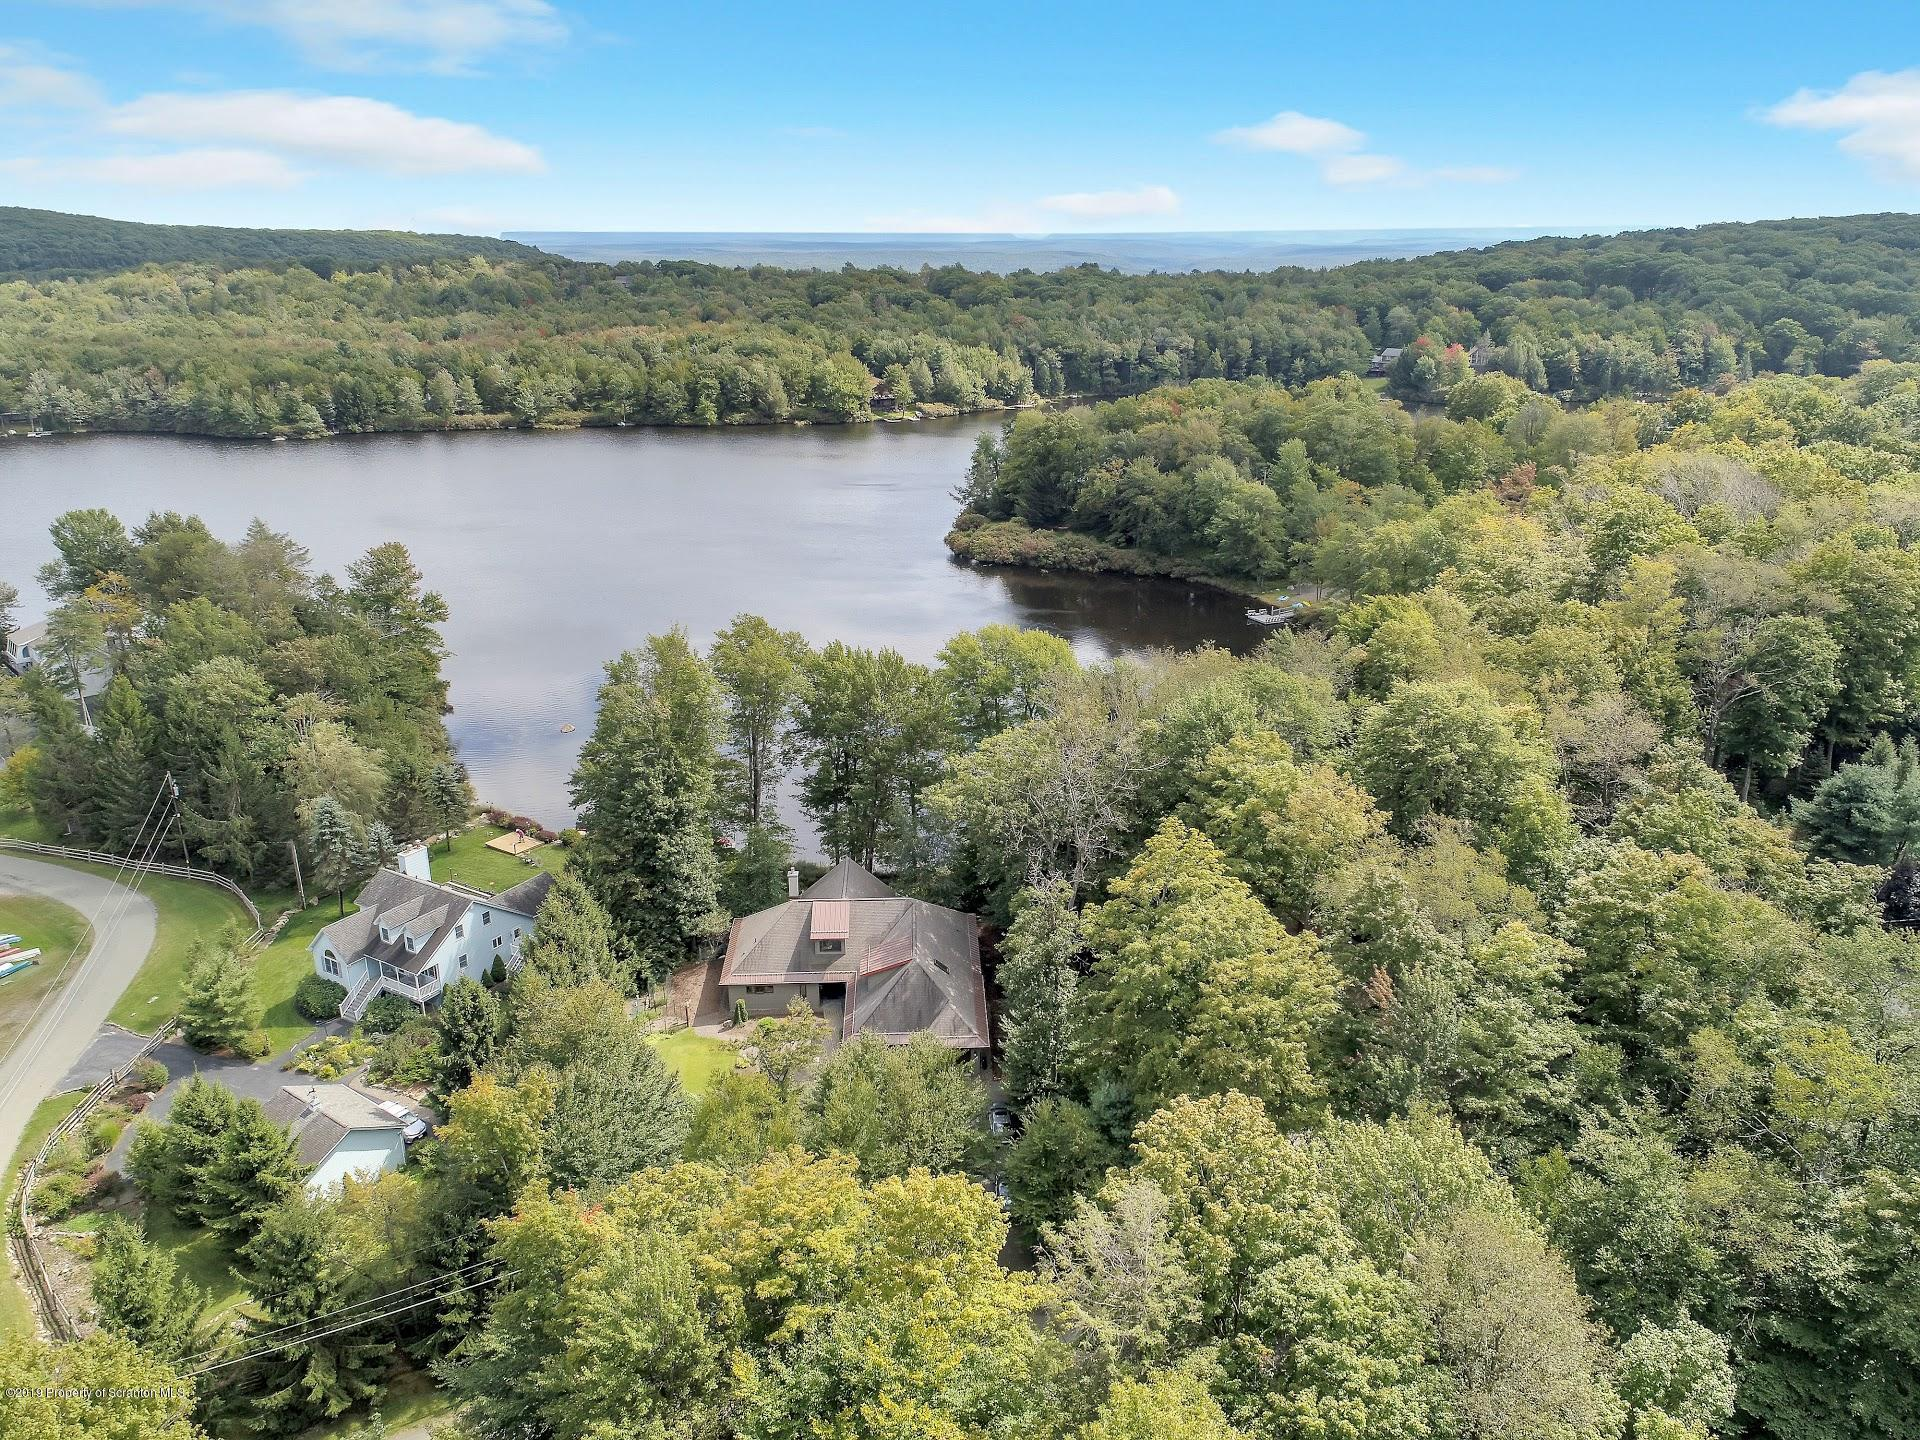 162 Lake In The Clouds Rd, Canadensis, Pennsylvania 18325, 3 Bedrooms Bedrooms, 10 Rooms Rooms,2 BathroomsBathrooms,Single Family,For Sale,Lake In The Clouds,19-4349